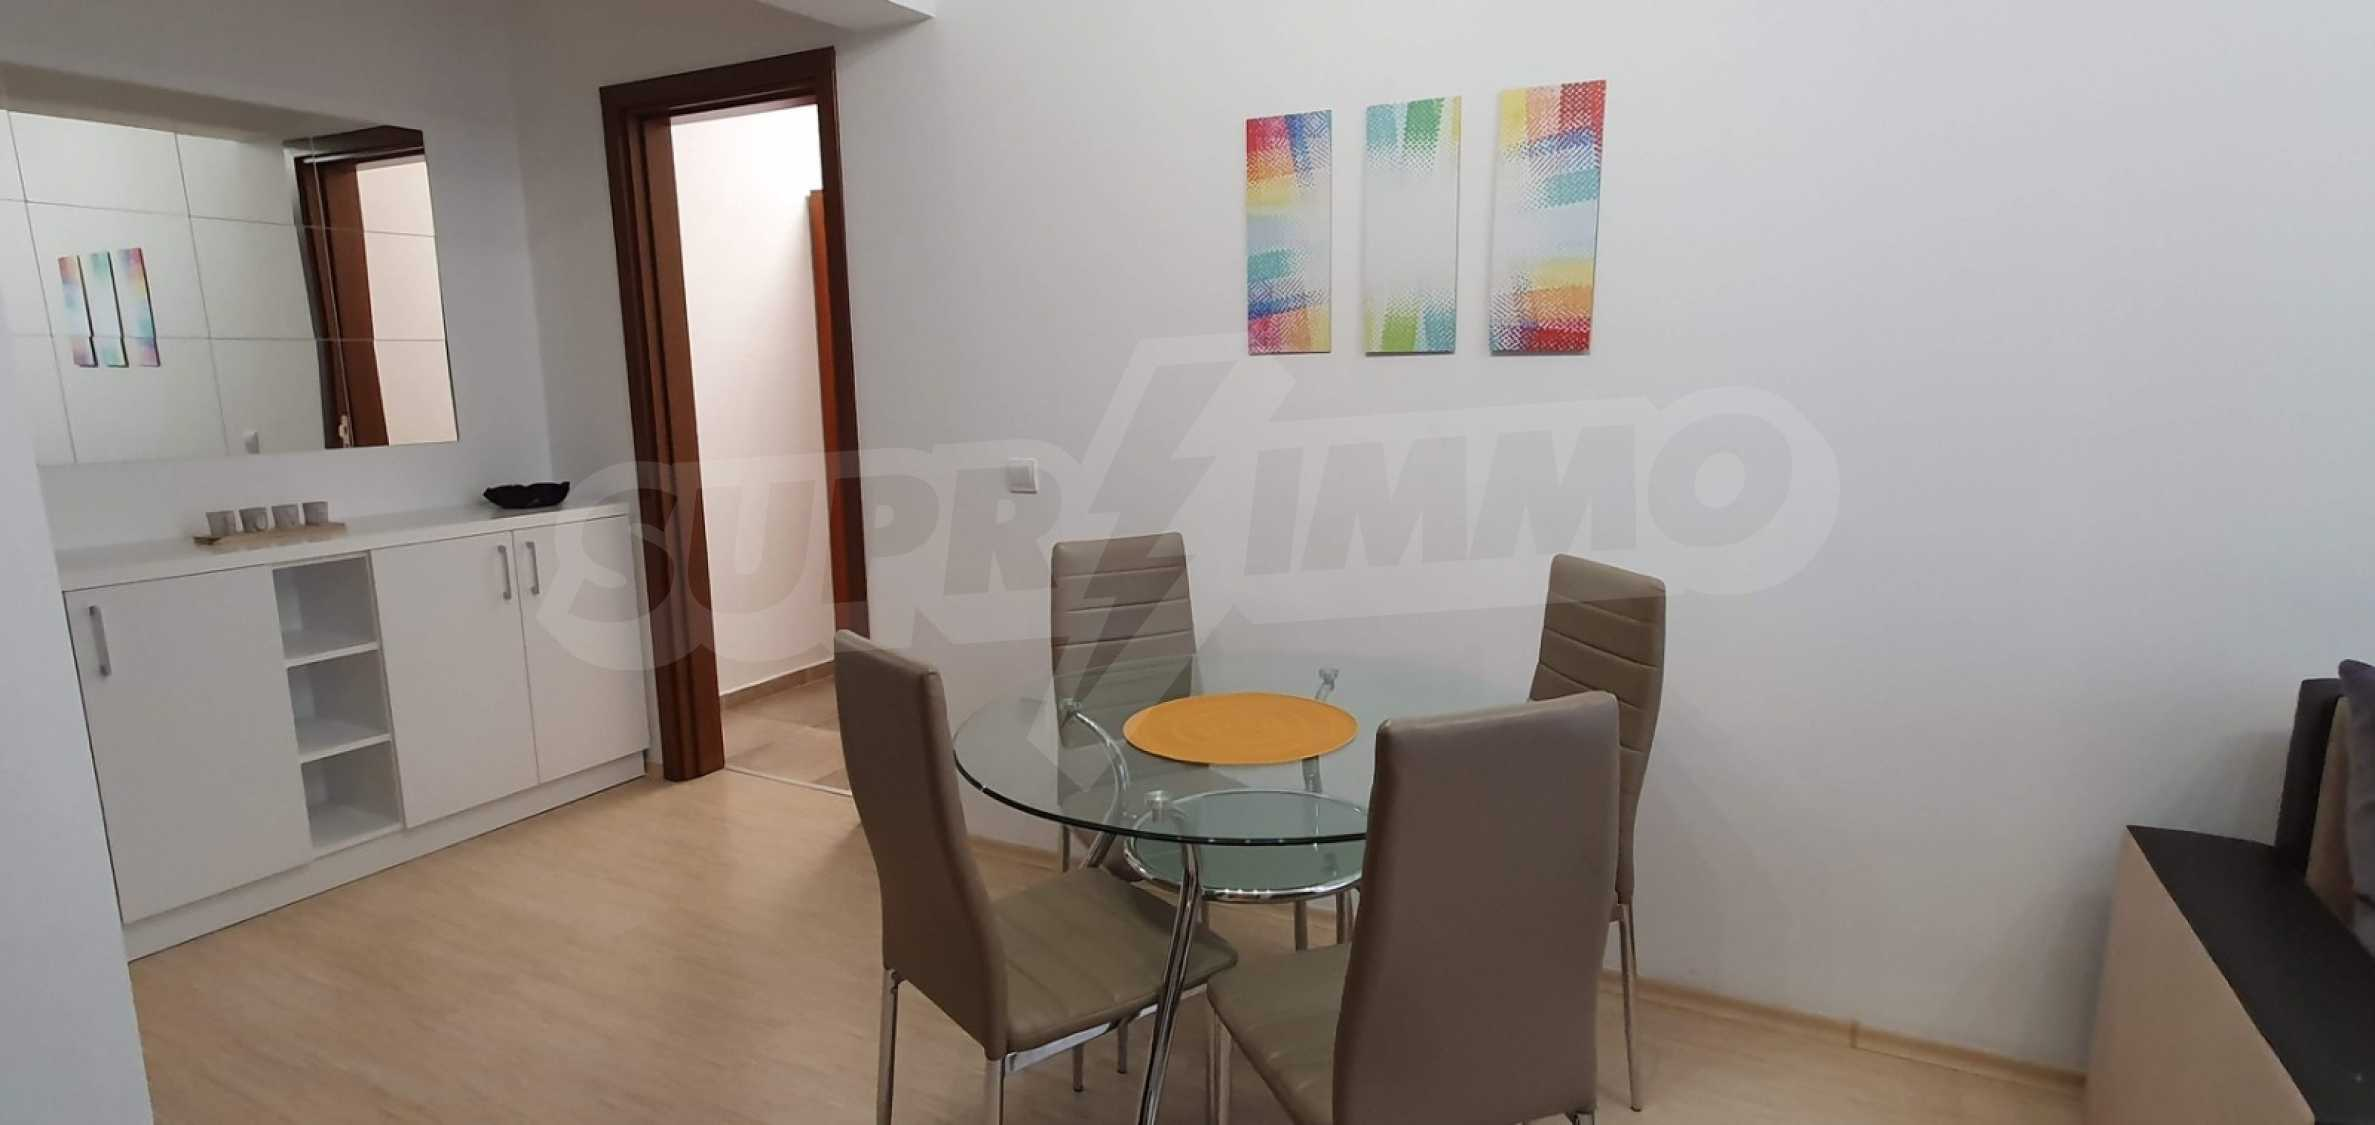 One bedroom apartment in a new residential building near the HMI, in Plovdiv 2